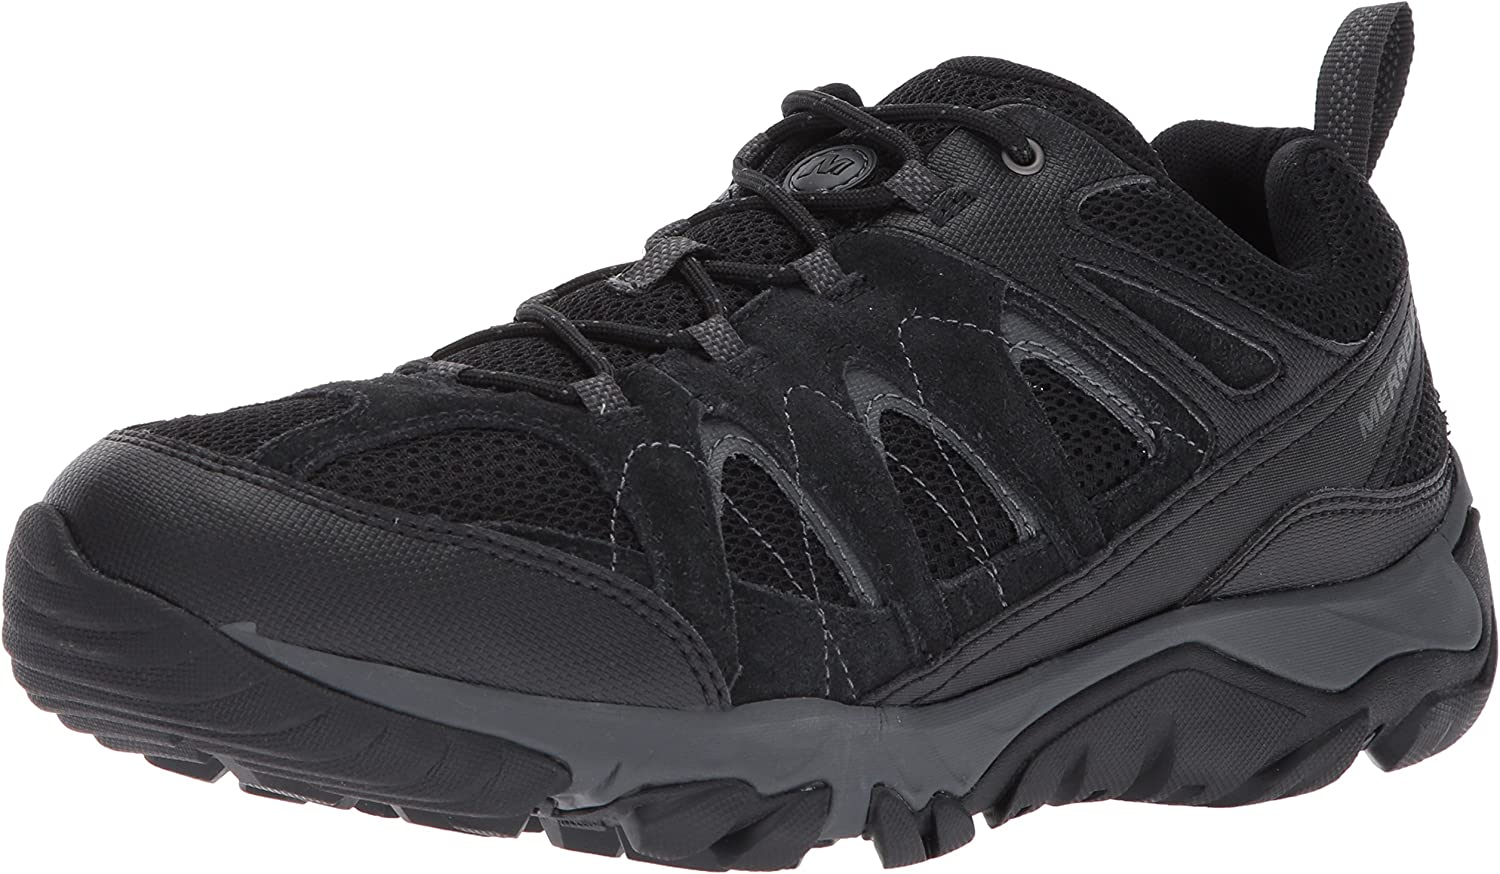 Outmost Vent Hiking Boot Black